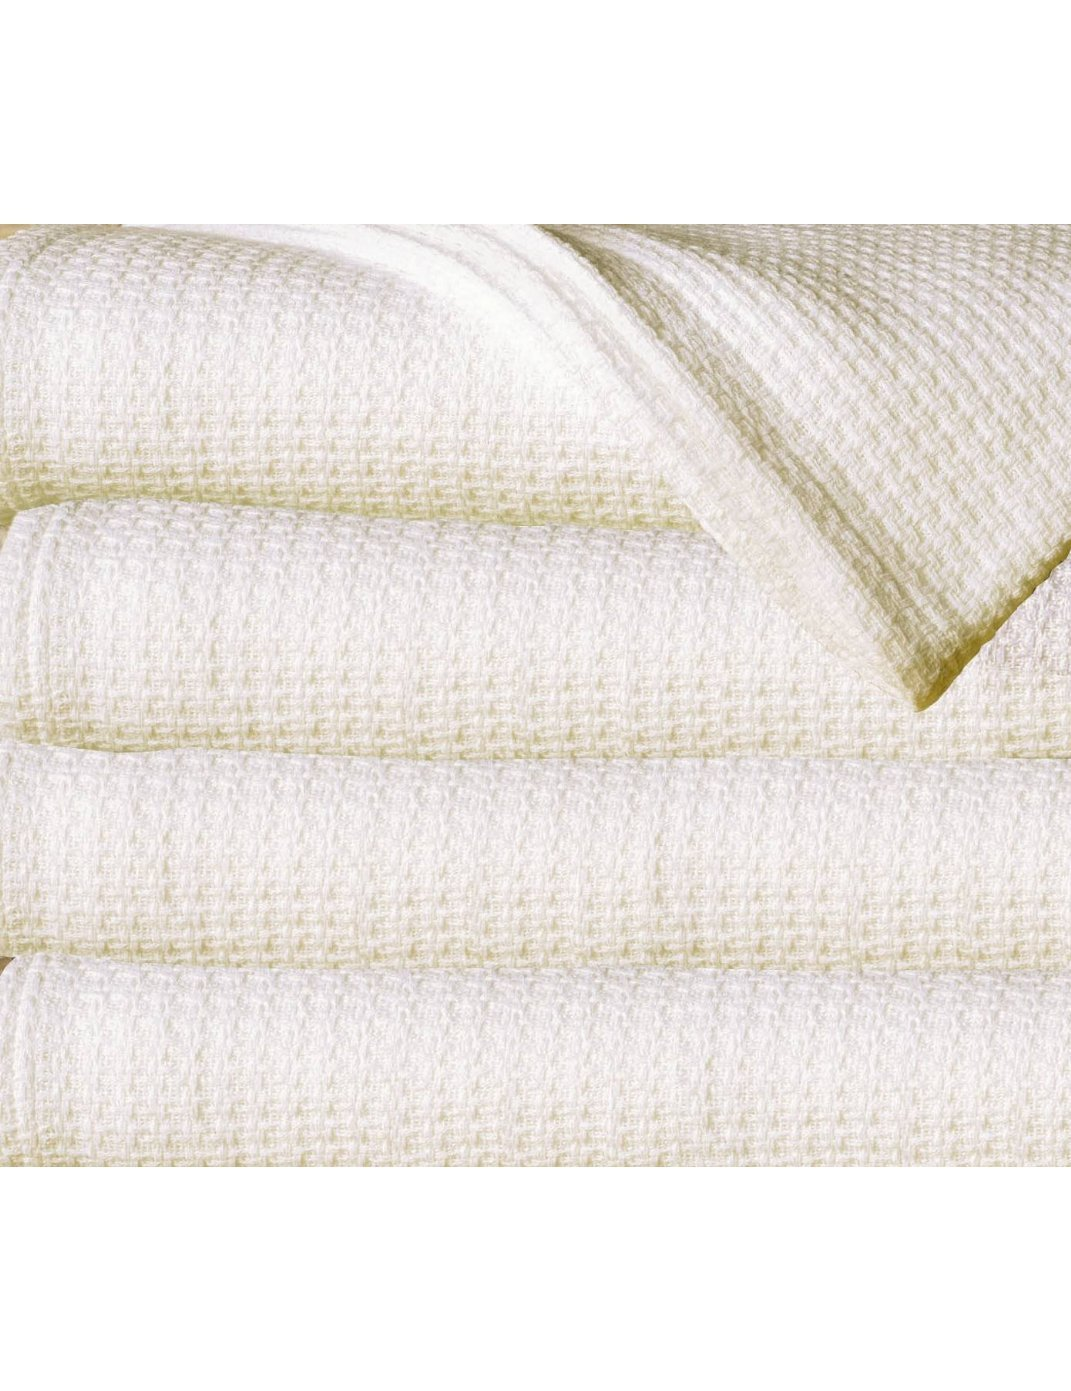 100% Cotton Thermal Blanket, IVORY, Twin/Full